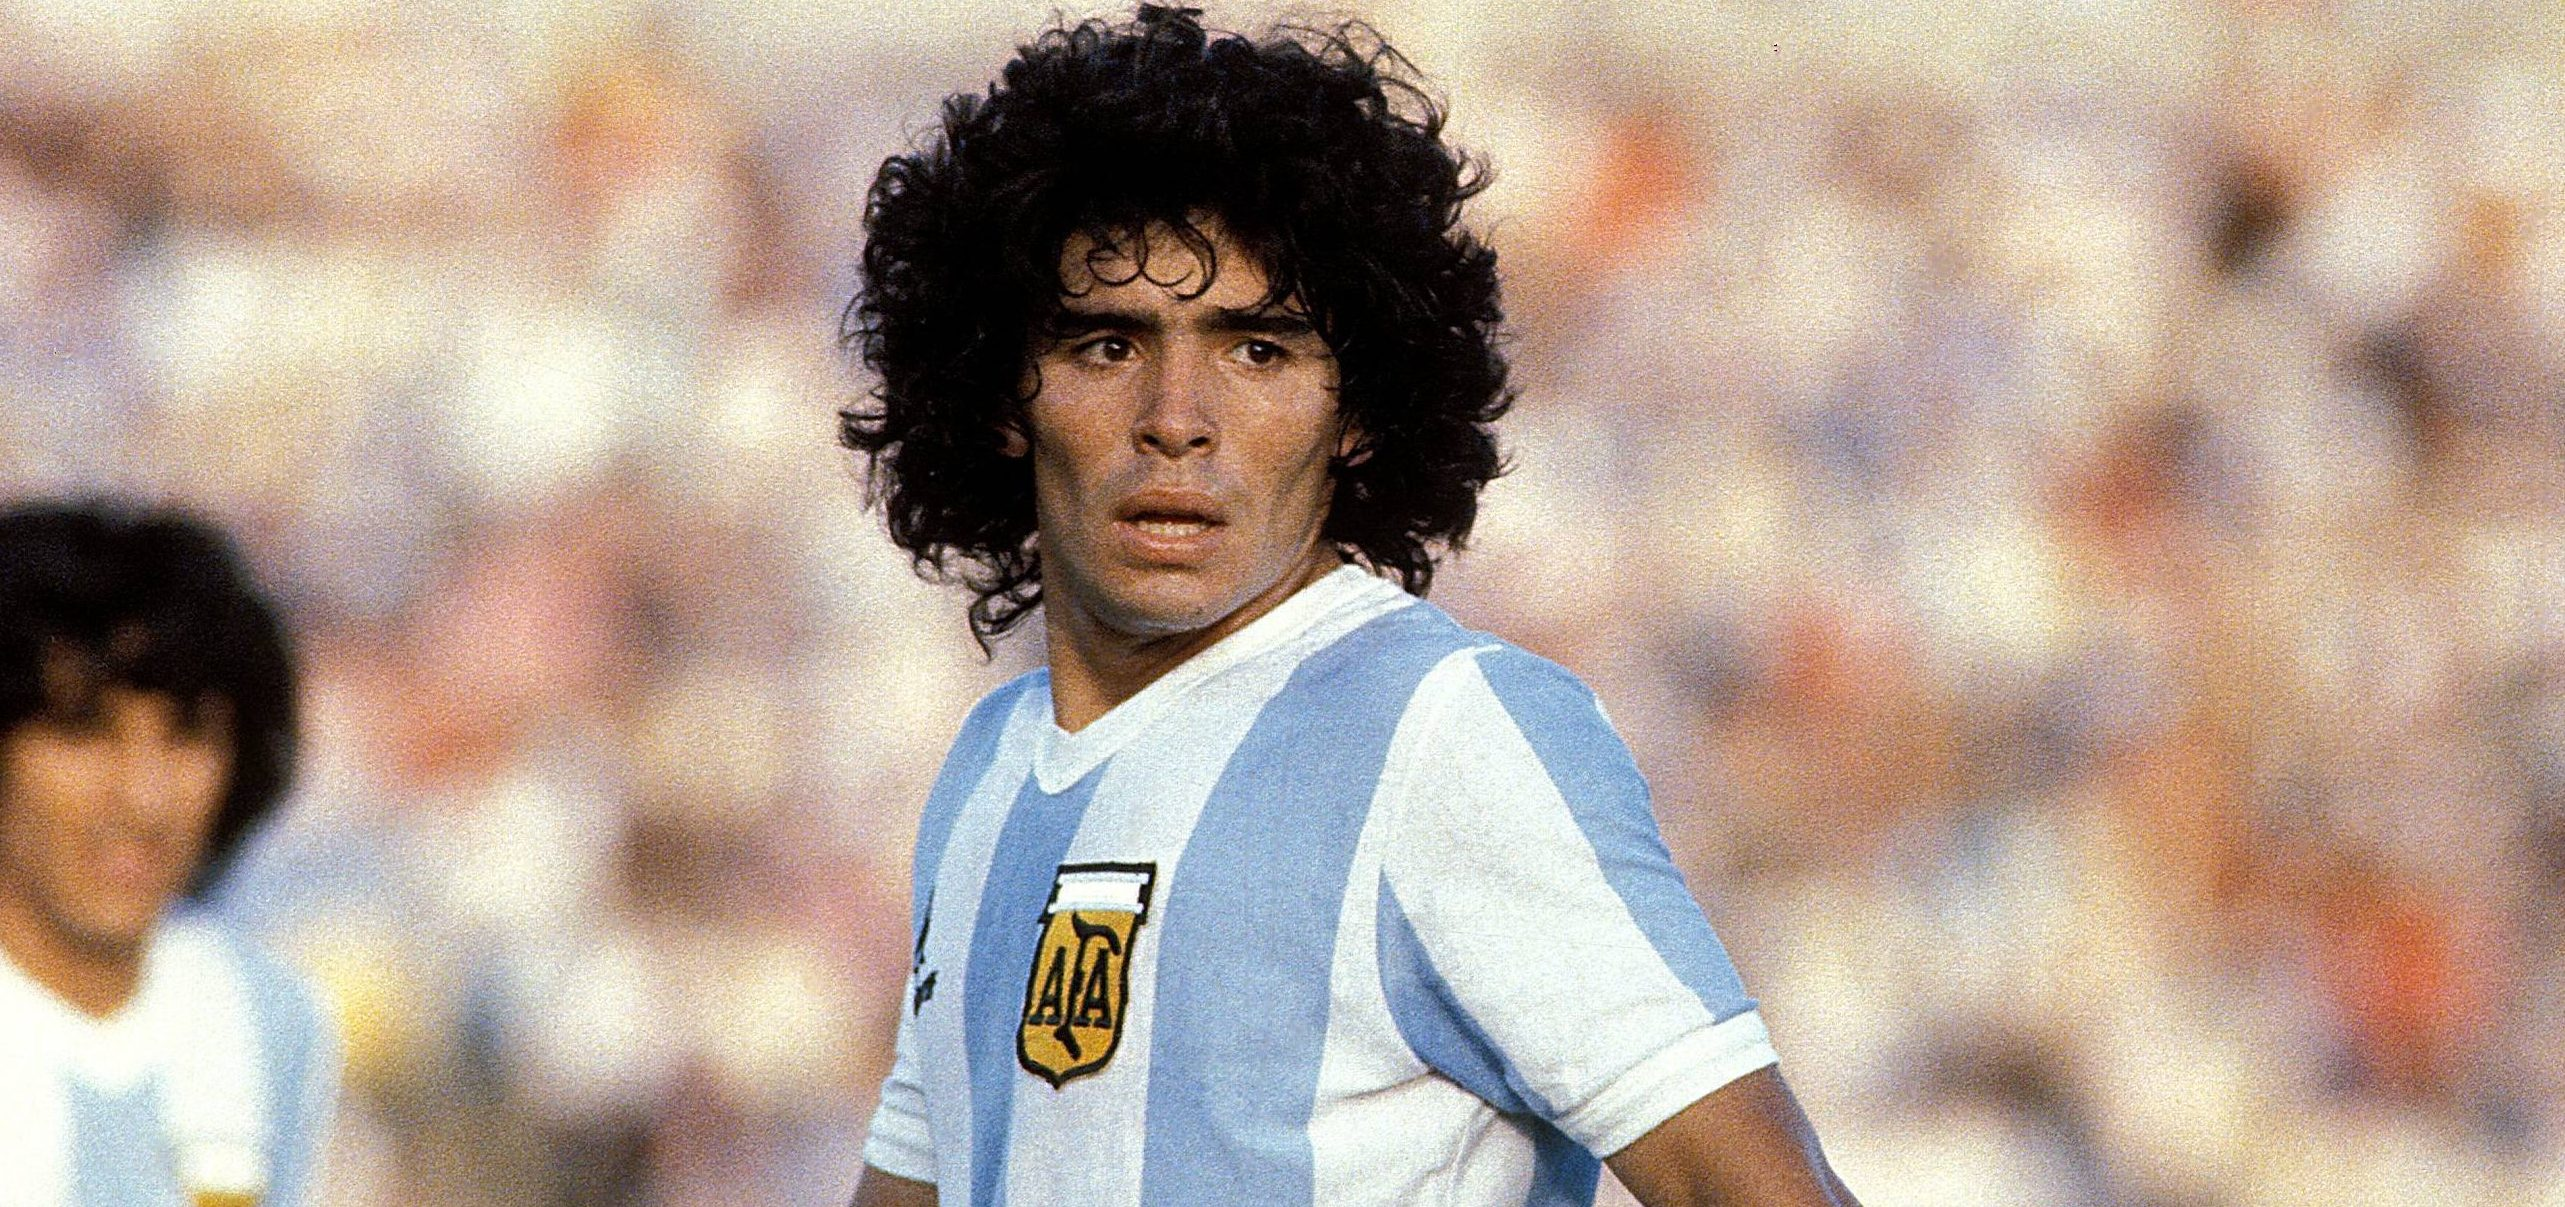 Diego Maradona – reluctantly, we worship